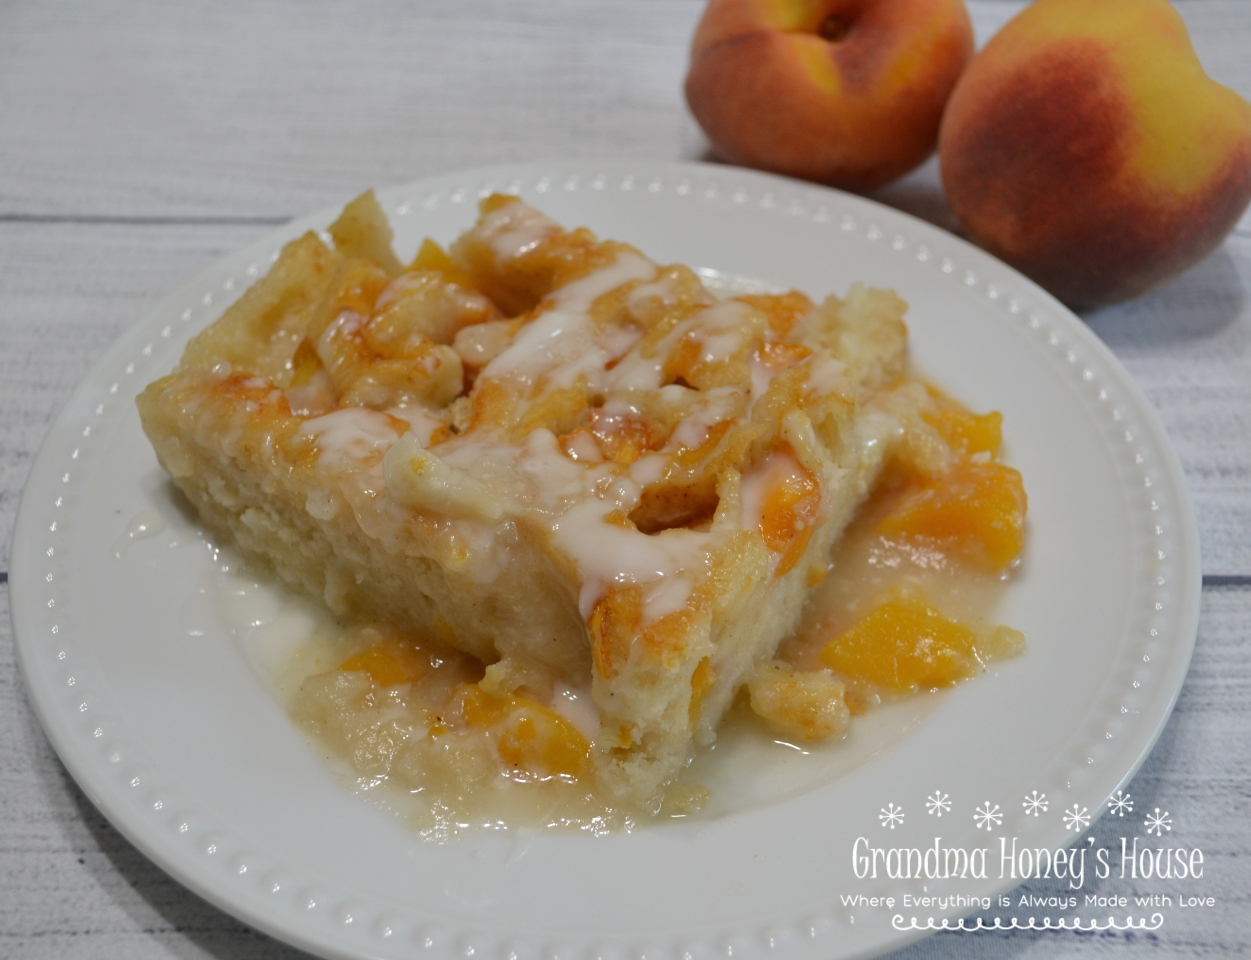 A delicious dessert made with fresh peaches and mascarpone cheese, rolled up in a shortbread crust. Baked in a simple syrup then drizzled with a mascarpone glaze.